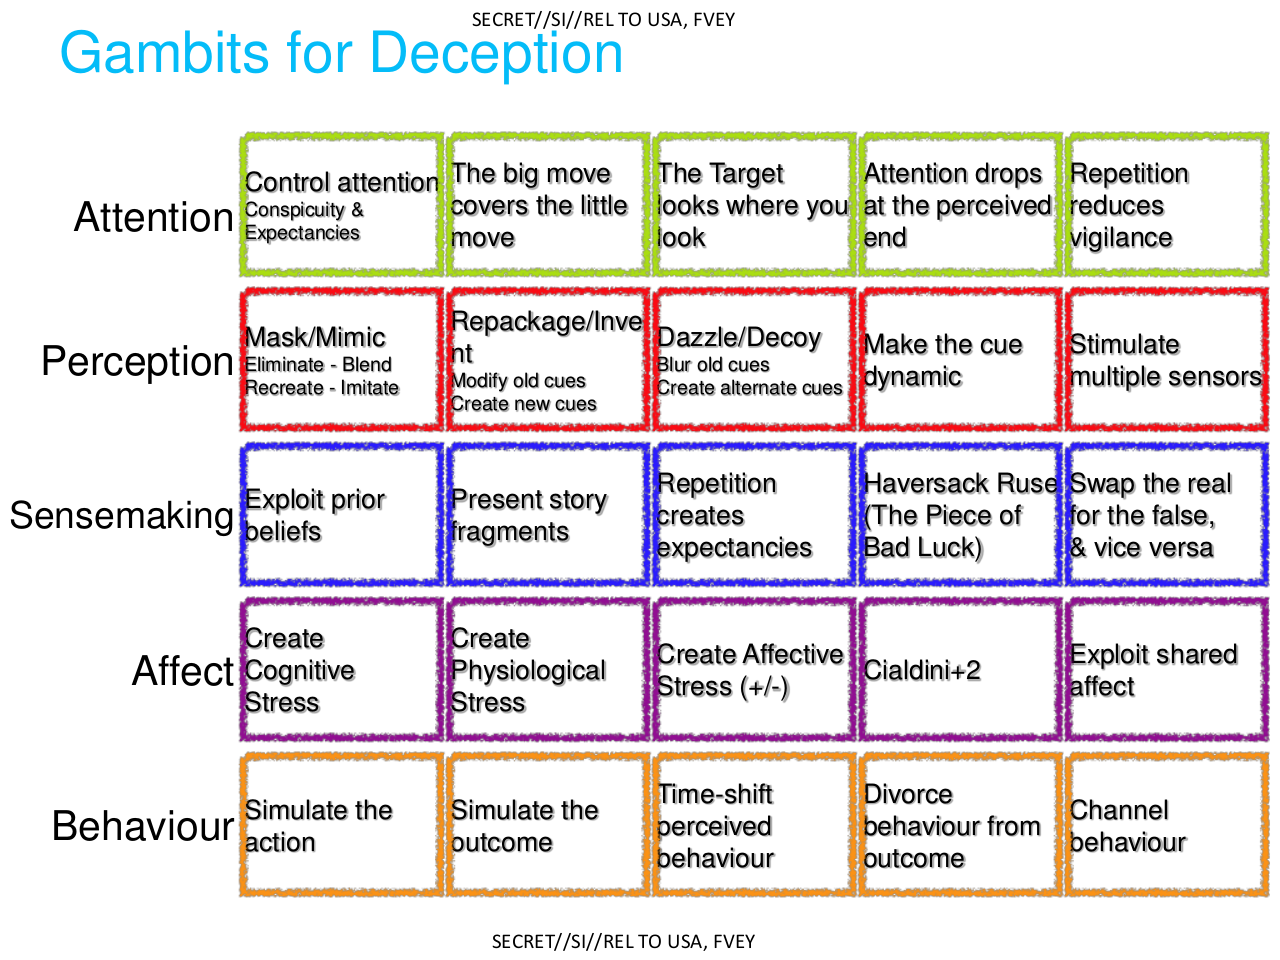 http://cdn01.theintercept.com/wp-uploads/sites/1/2014/02/deception_p24.png